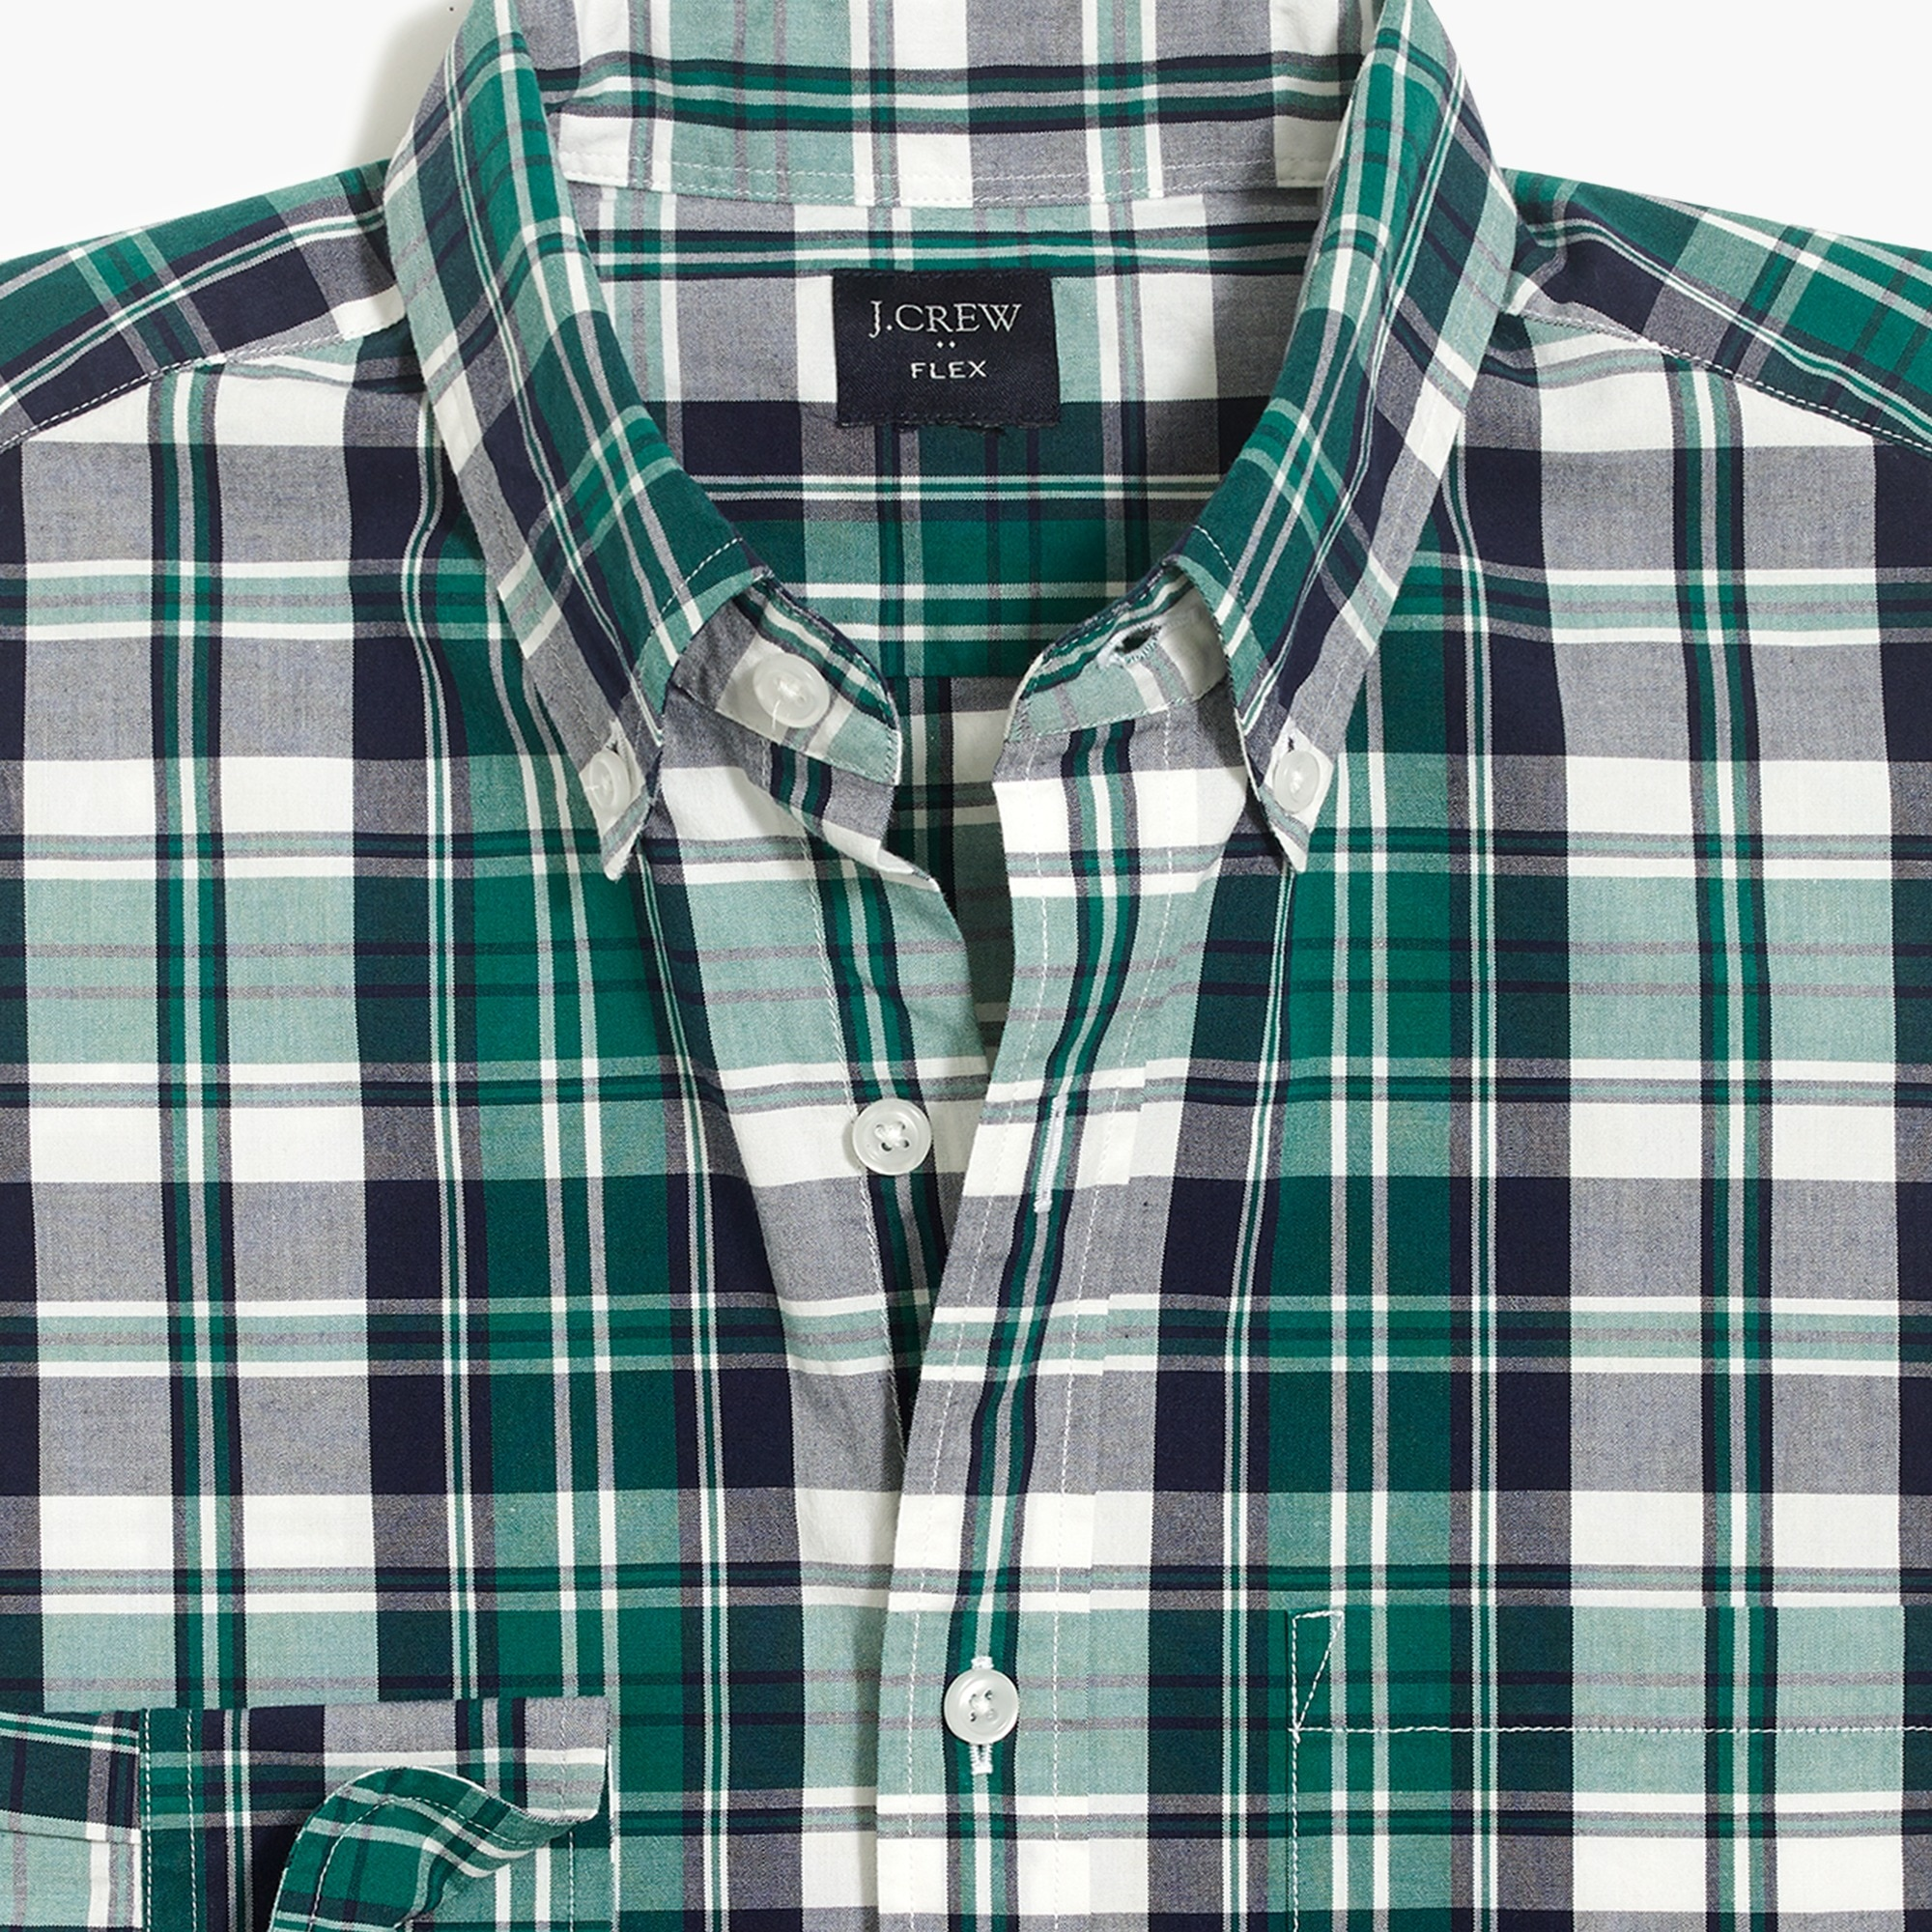 Flex washed shirt in plaid